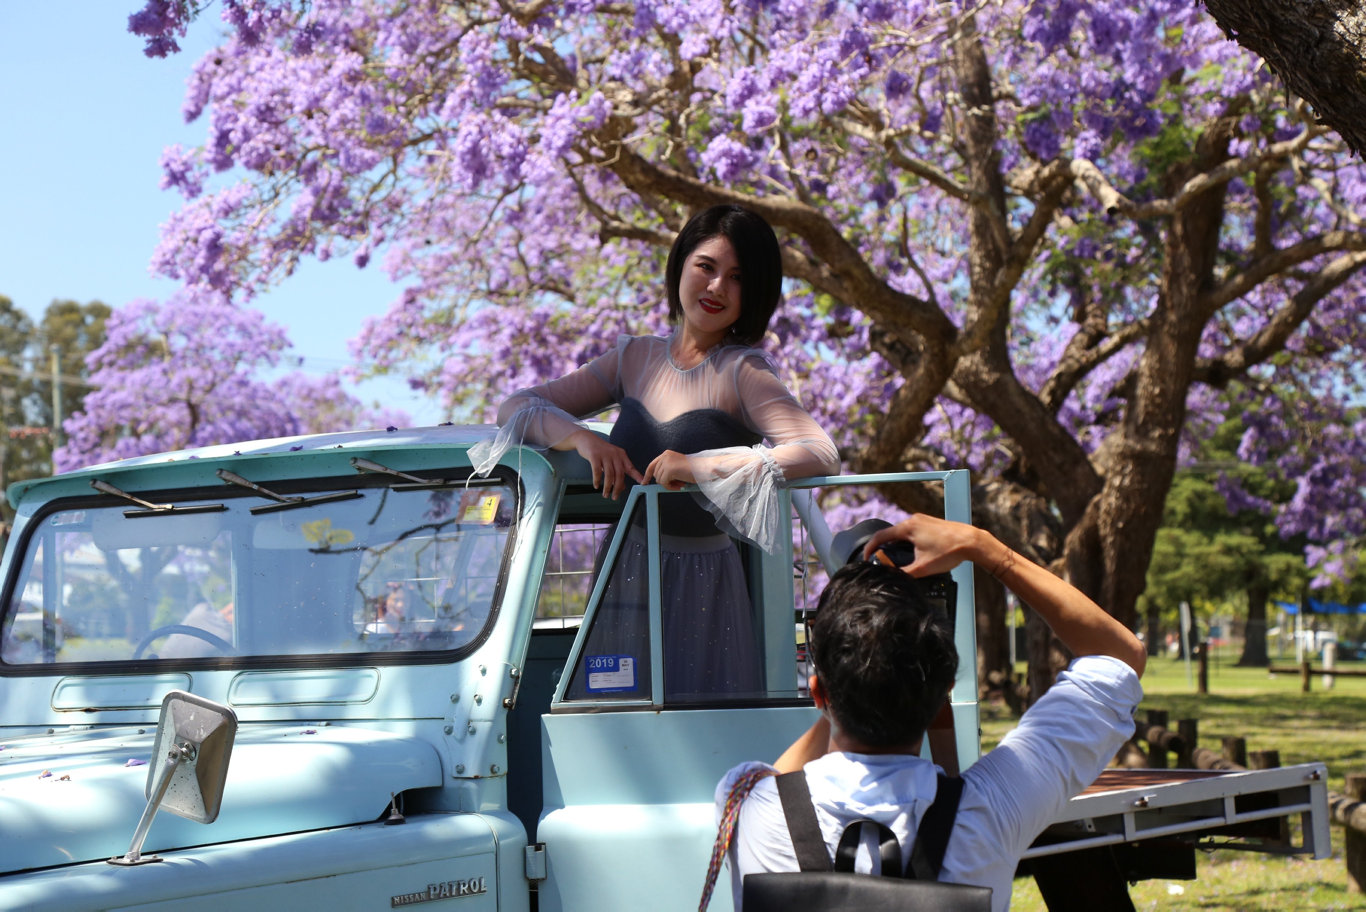 'Get off the $%#@ing road!' Ah, the sweet sounds of Jacaranda ring out once more